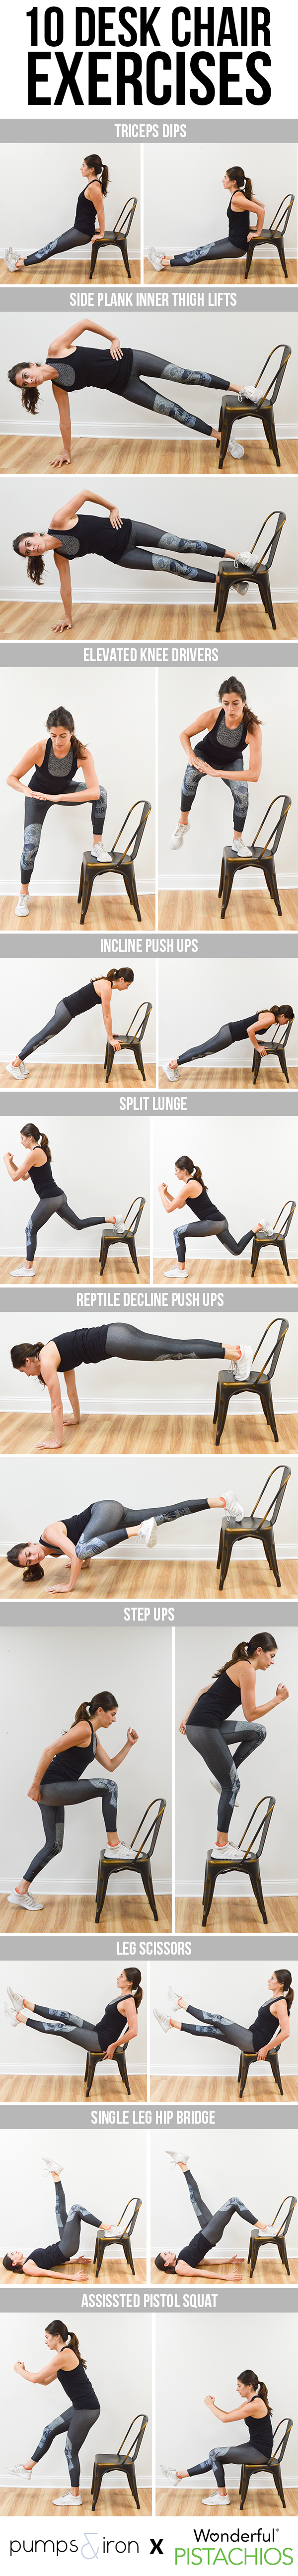 10 Exercises You Can Do With A Desk Chair Pumps Iron